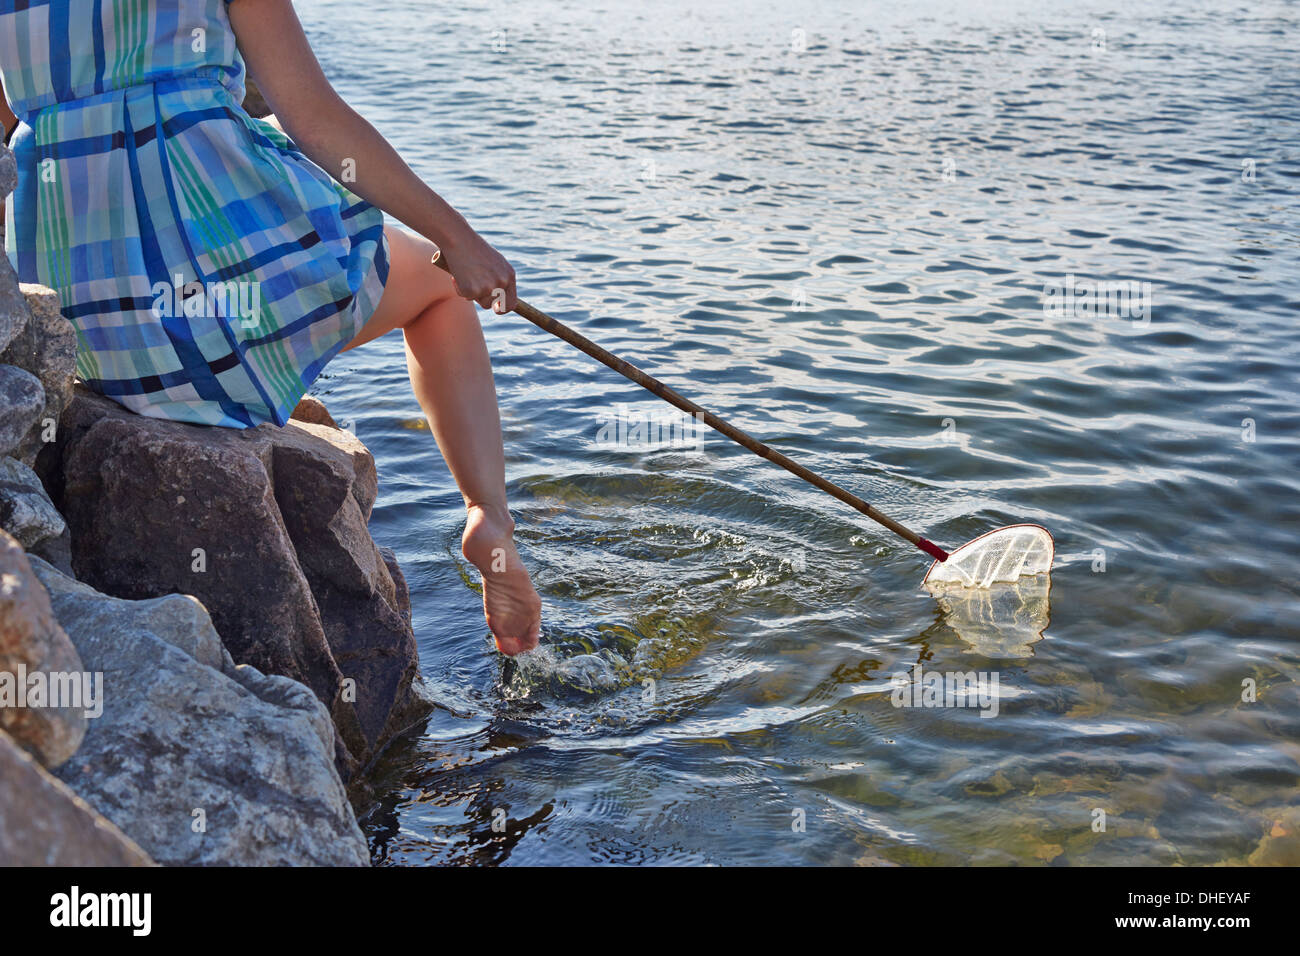 Close up of woman with fishing net, Utvalnas, Gavle, Sweden - Stock Image